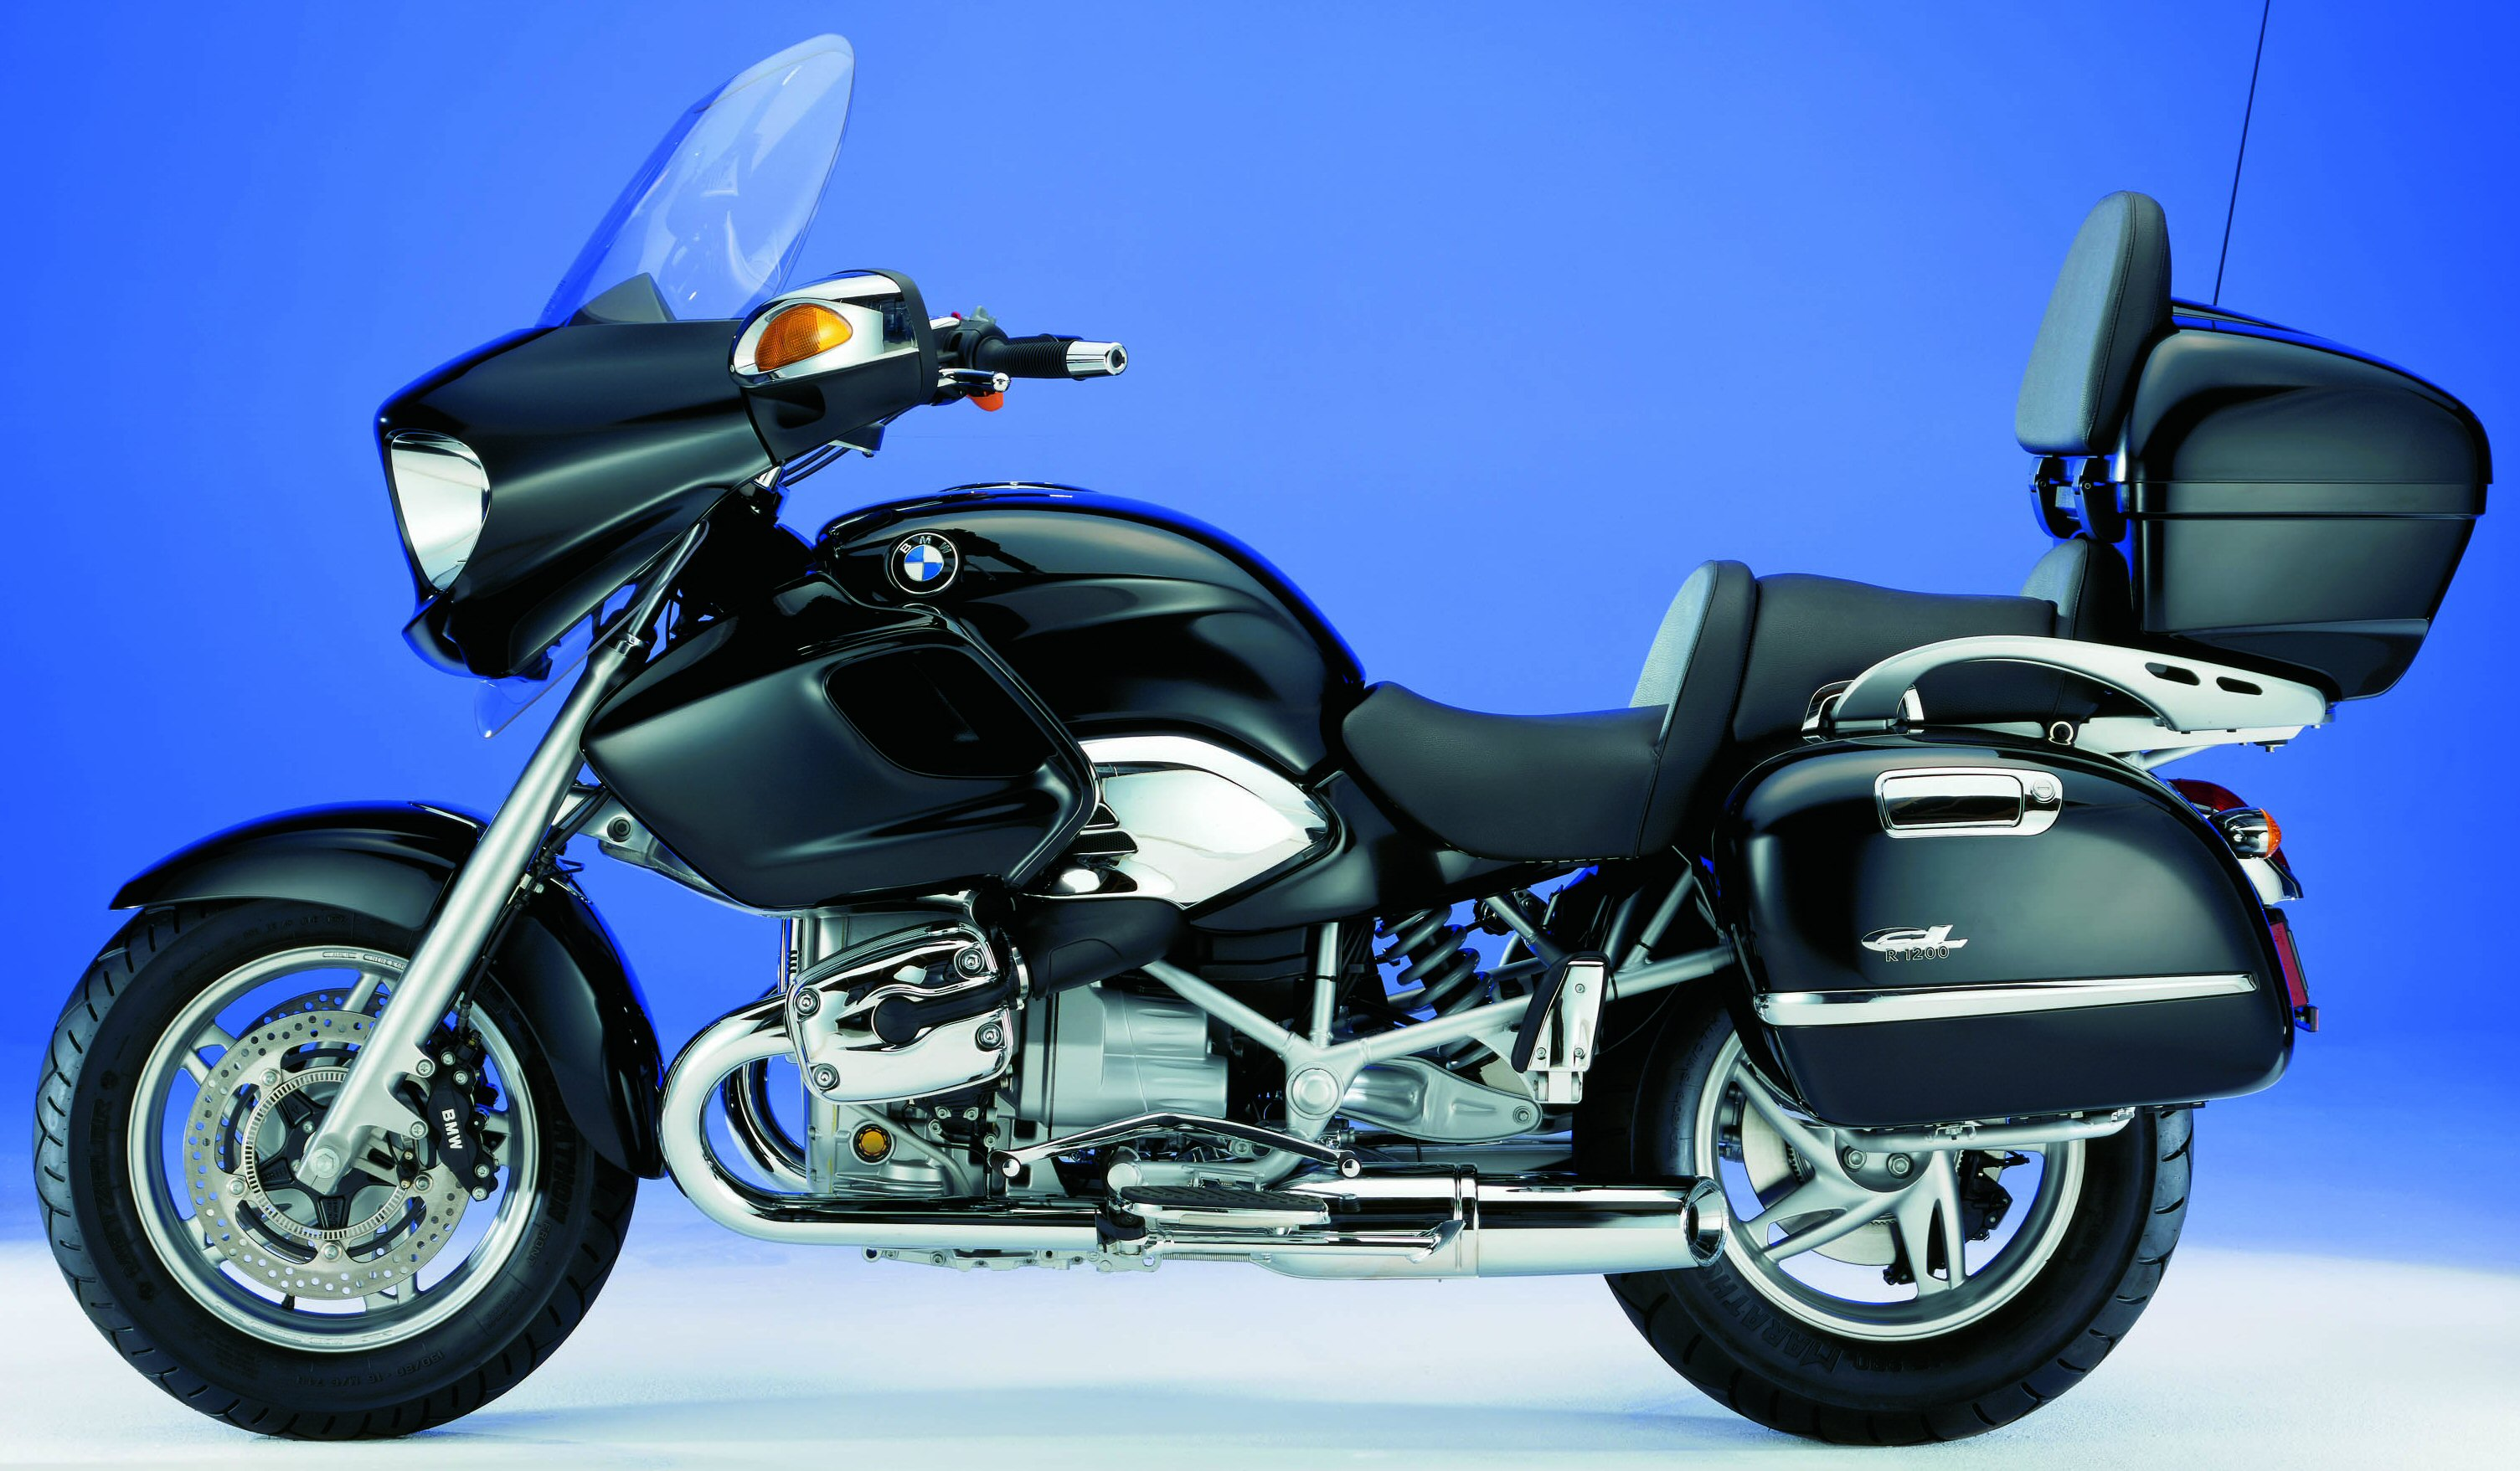 2006 bmw r 1200 cl review gallery top speed. Black Bedroom Furniture Sets. Home Design Ideas